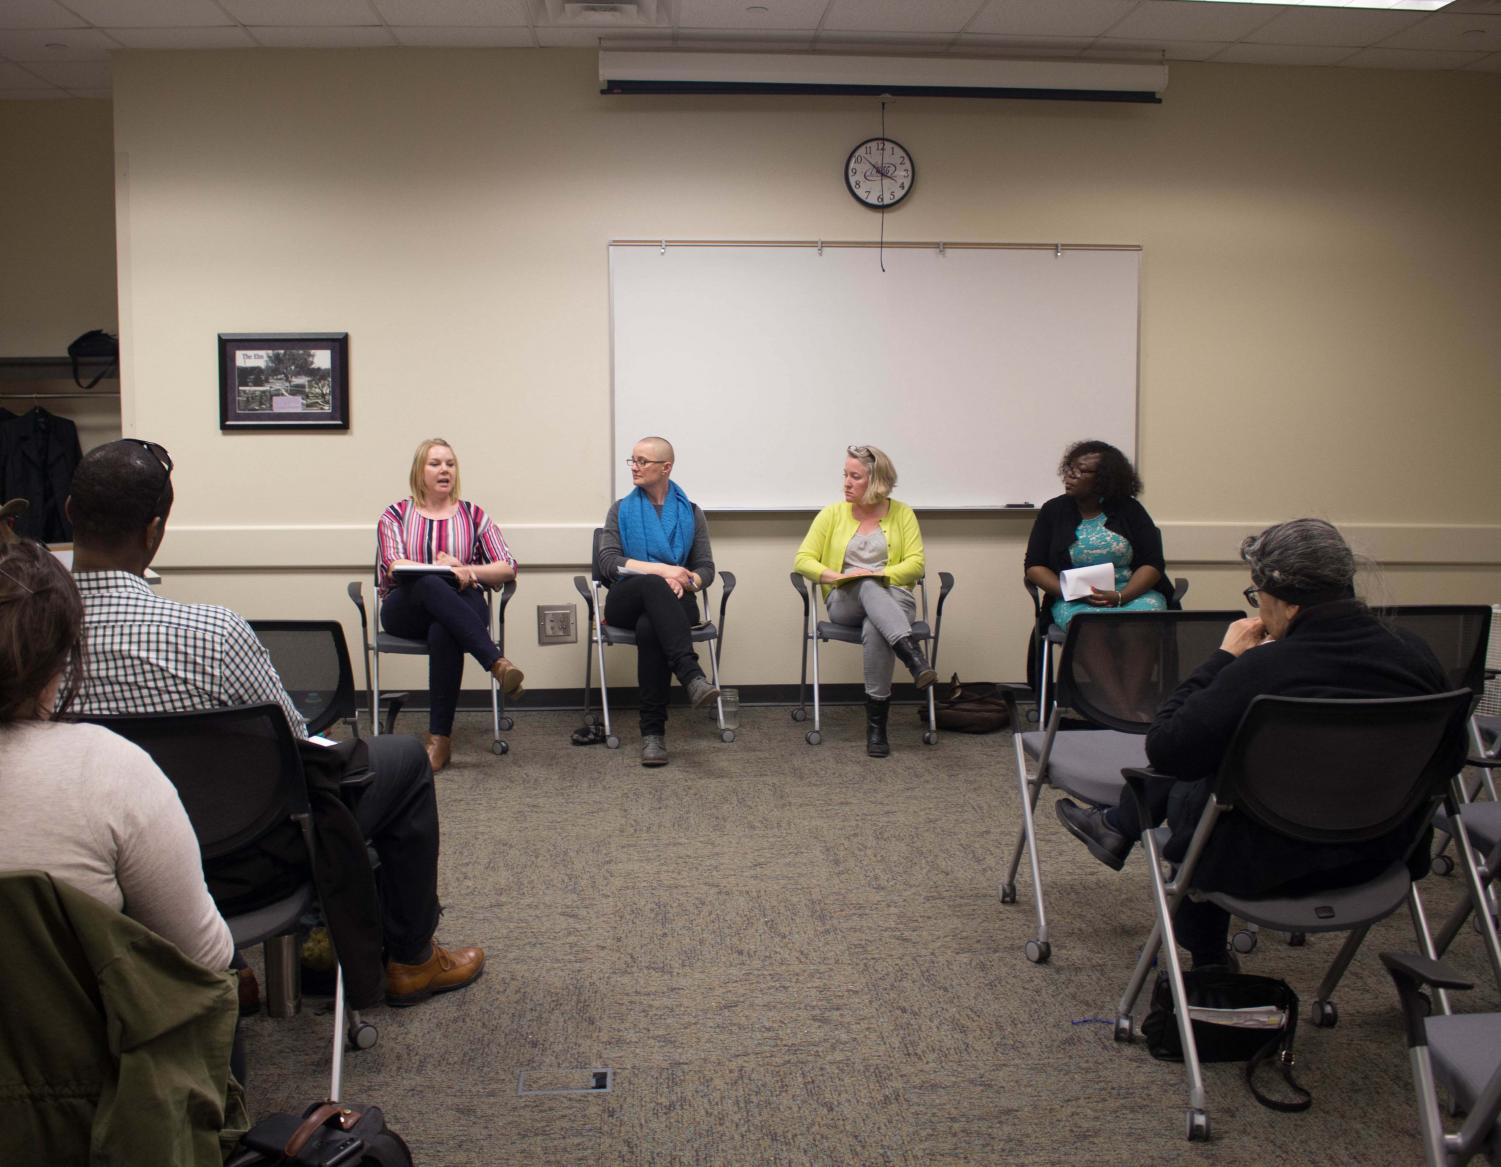 Four UNI professors hosted Classroom Conversations on Race: A Panel Discussion, an event that was held in the Elm Room of Maucker Union on Thursday, March 28.